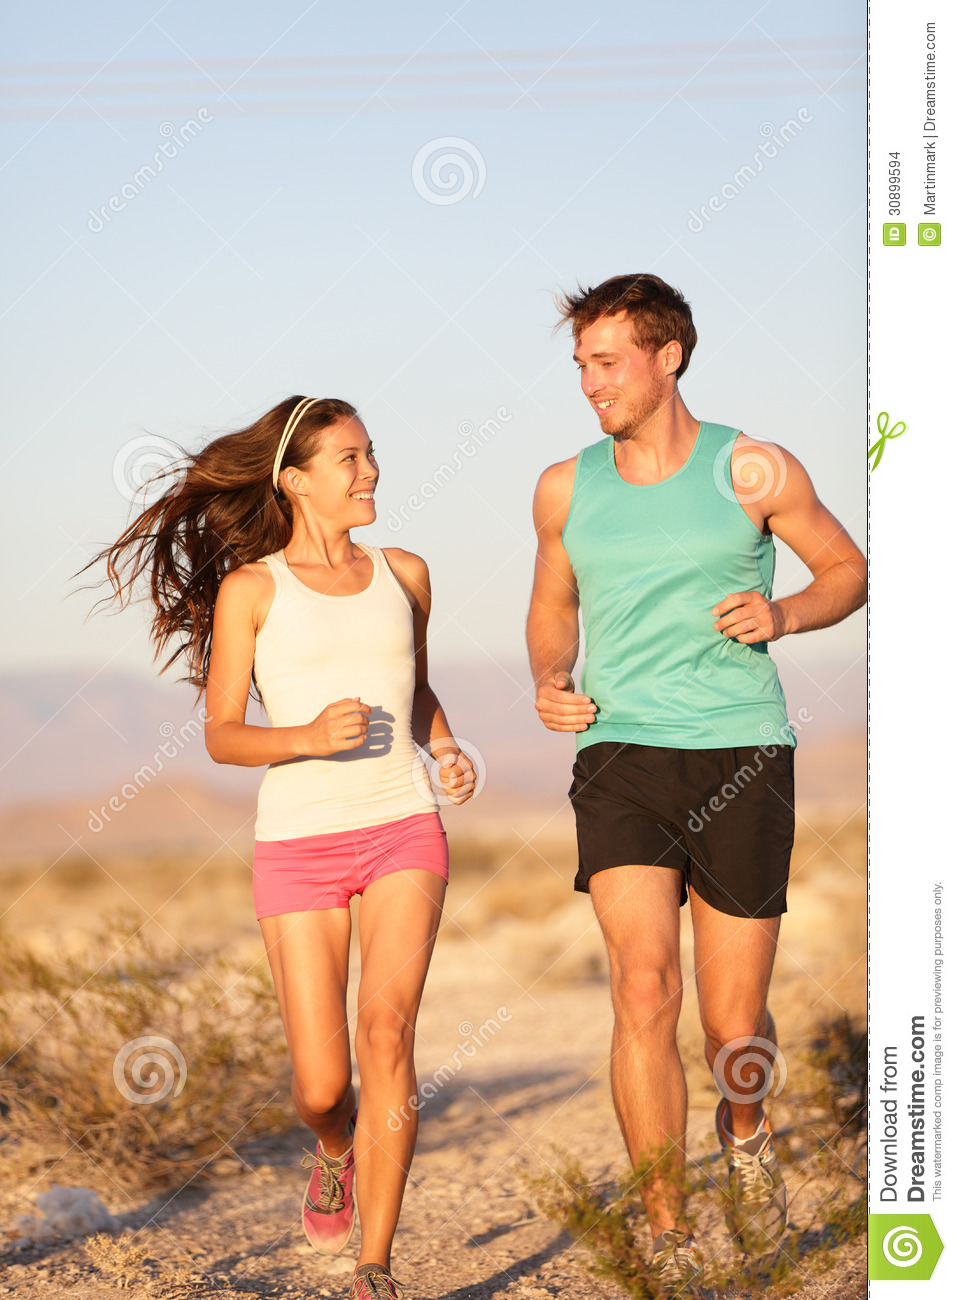 Runners - Active Fitness Couple Running Laughing Stock Images - Image